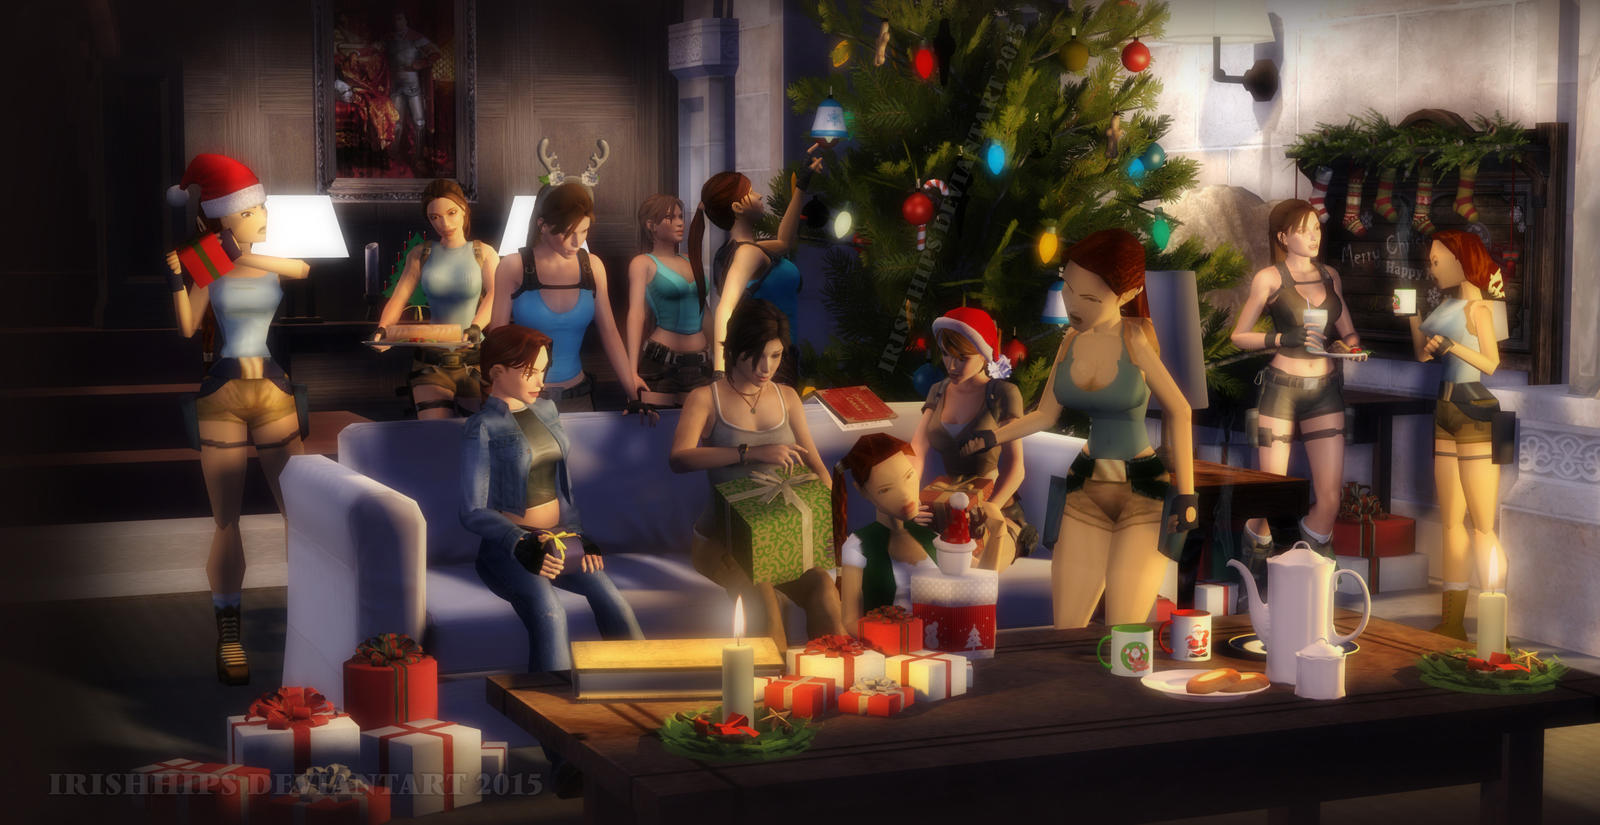 tomb_raider_christmas.jpg